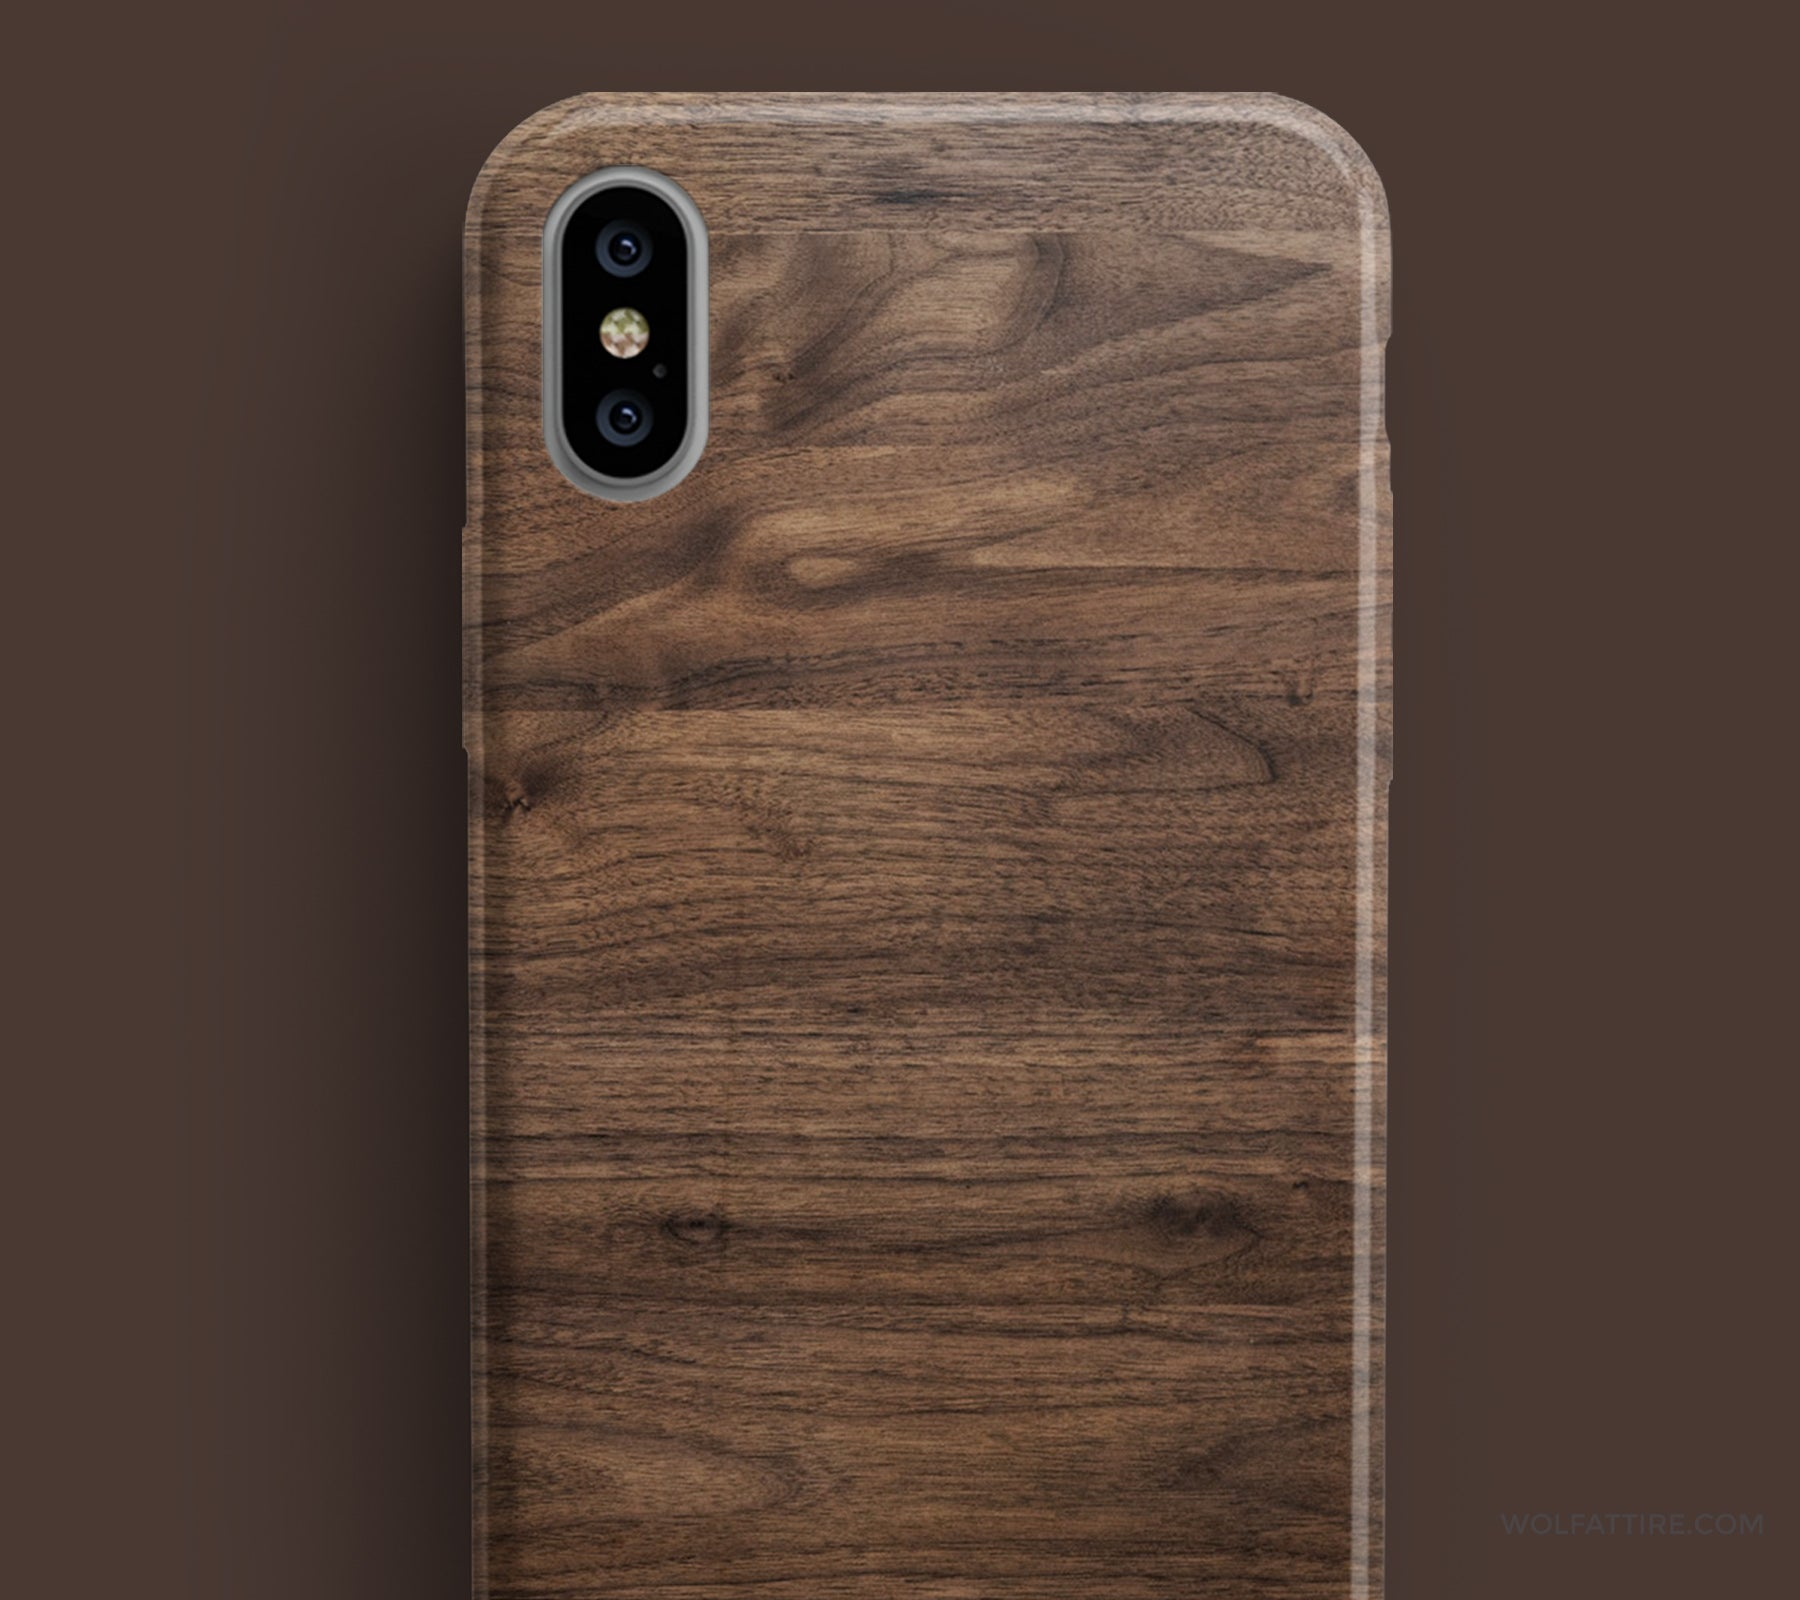 bc8c2acbd36 Walnut texture iphone x covers and cases online india - wolfattire